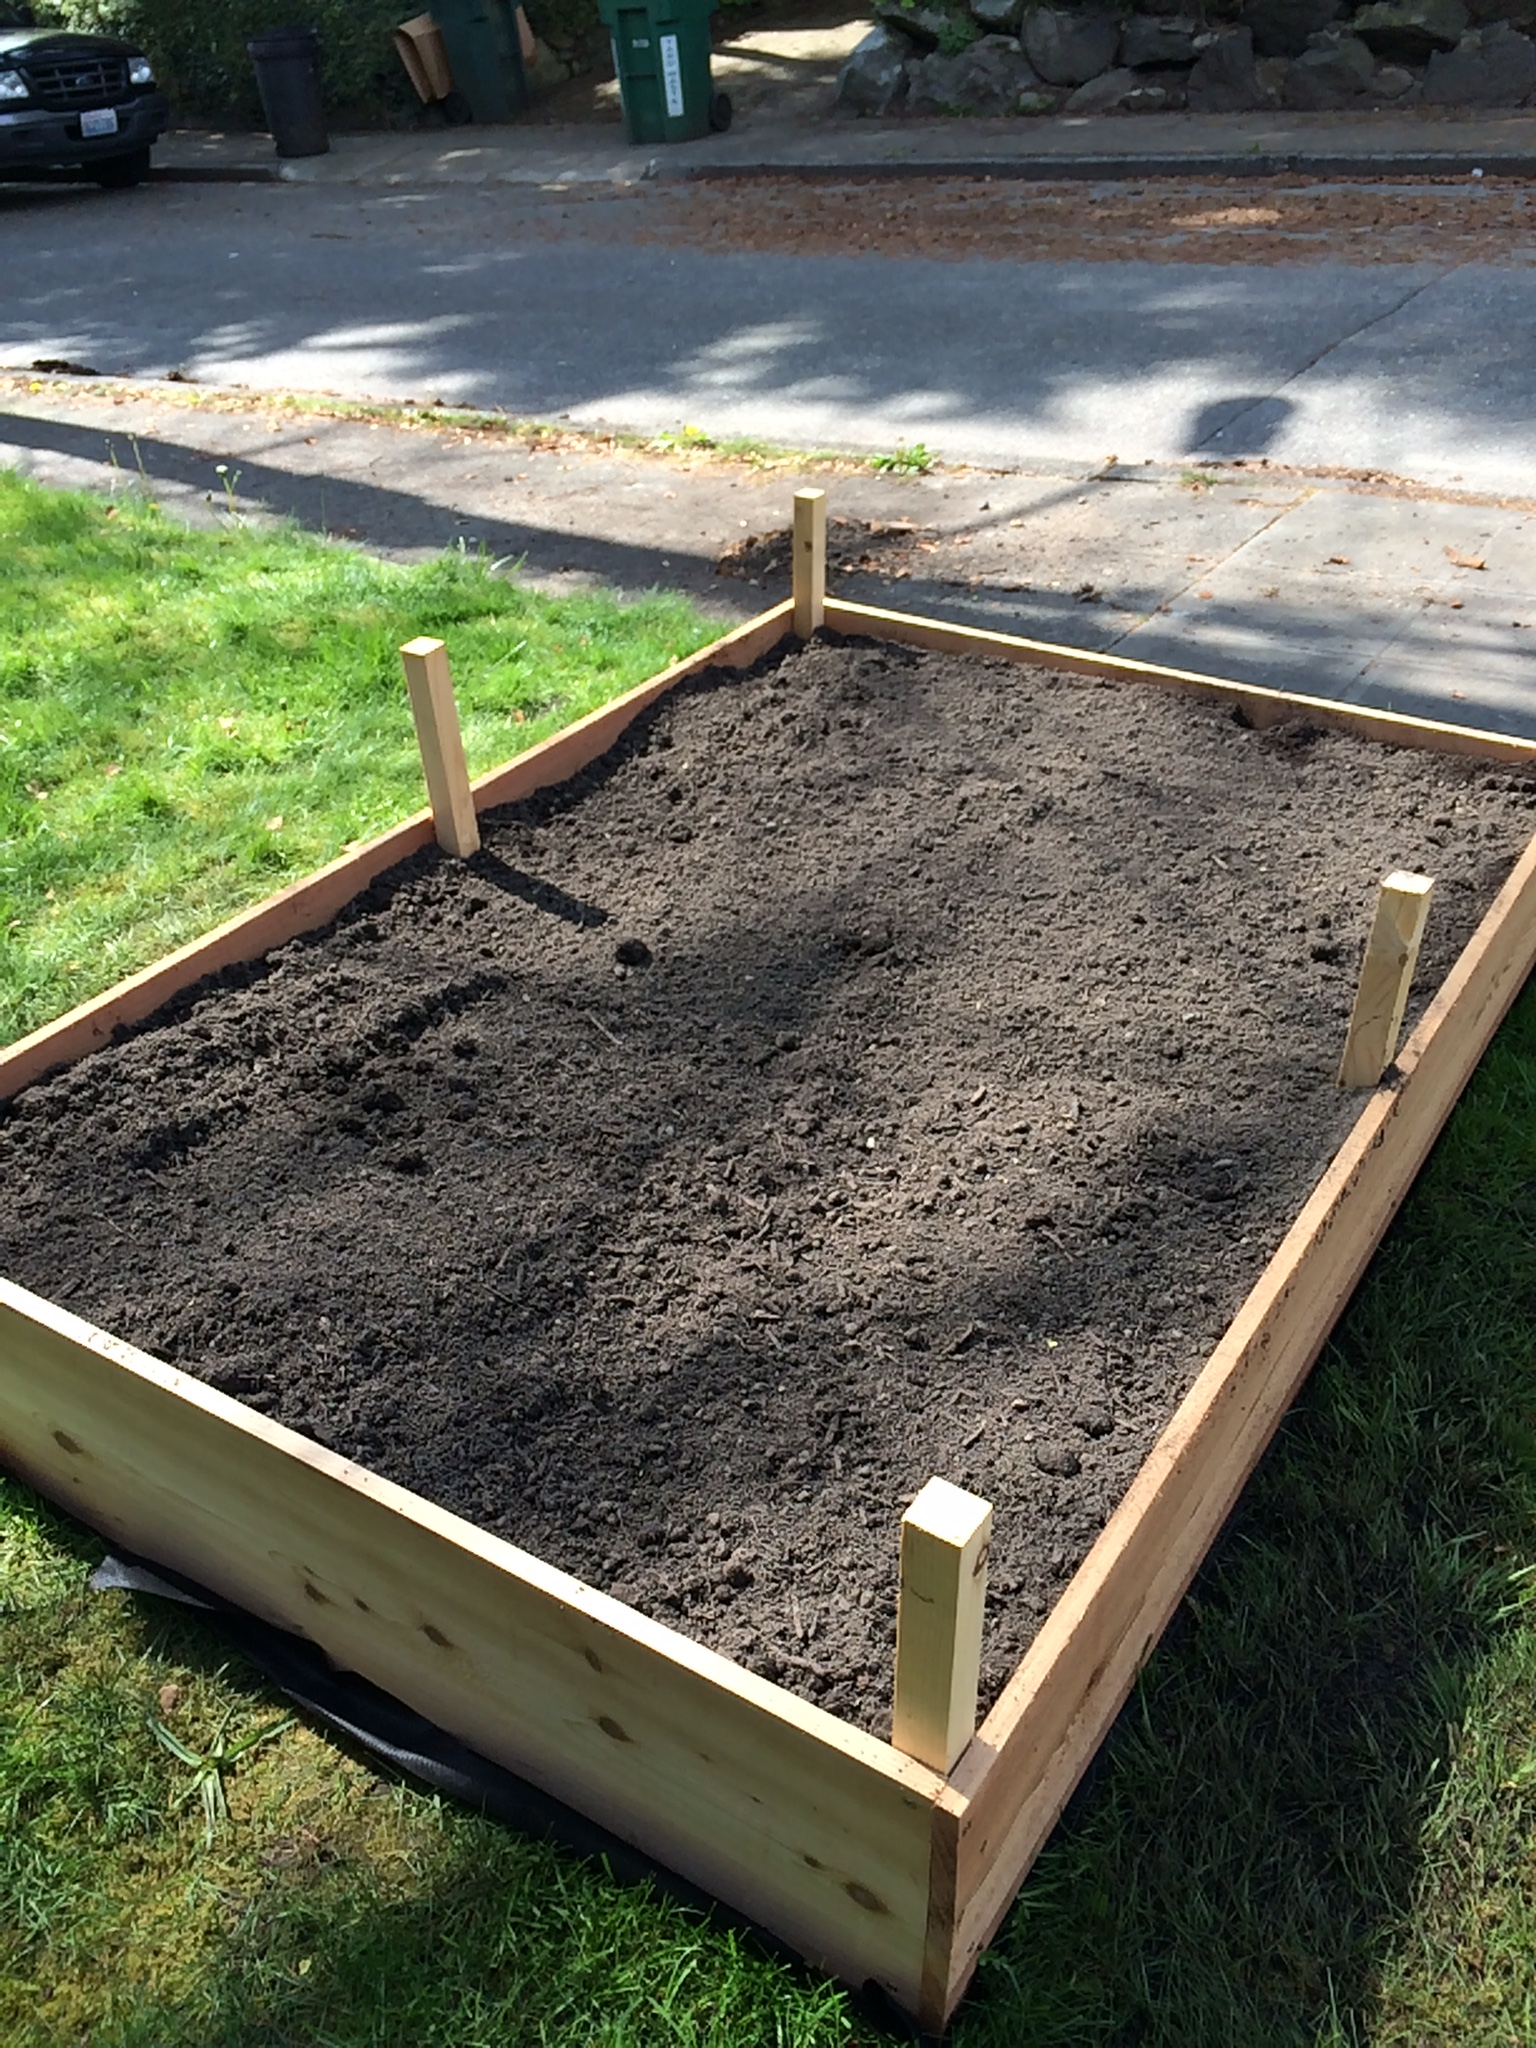 It takes a LOT of soil to fill a box like this and raking it in is not for the faint of heart, but OH SO WORTH IT